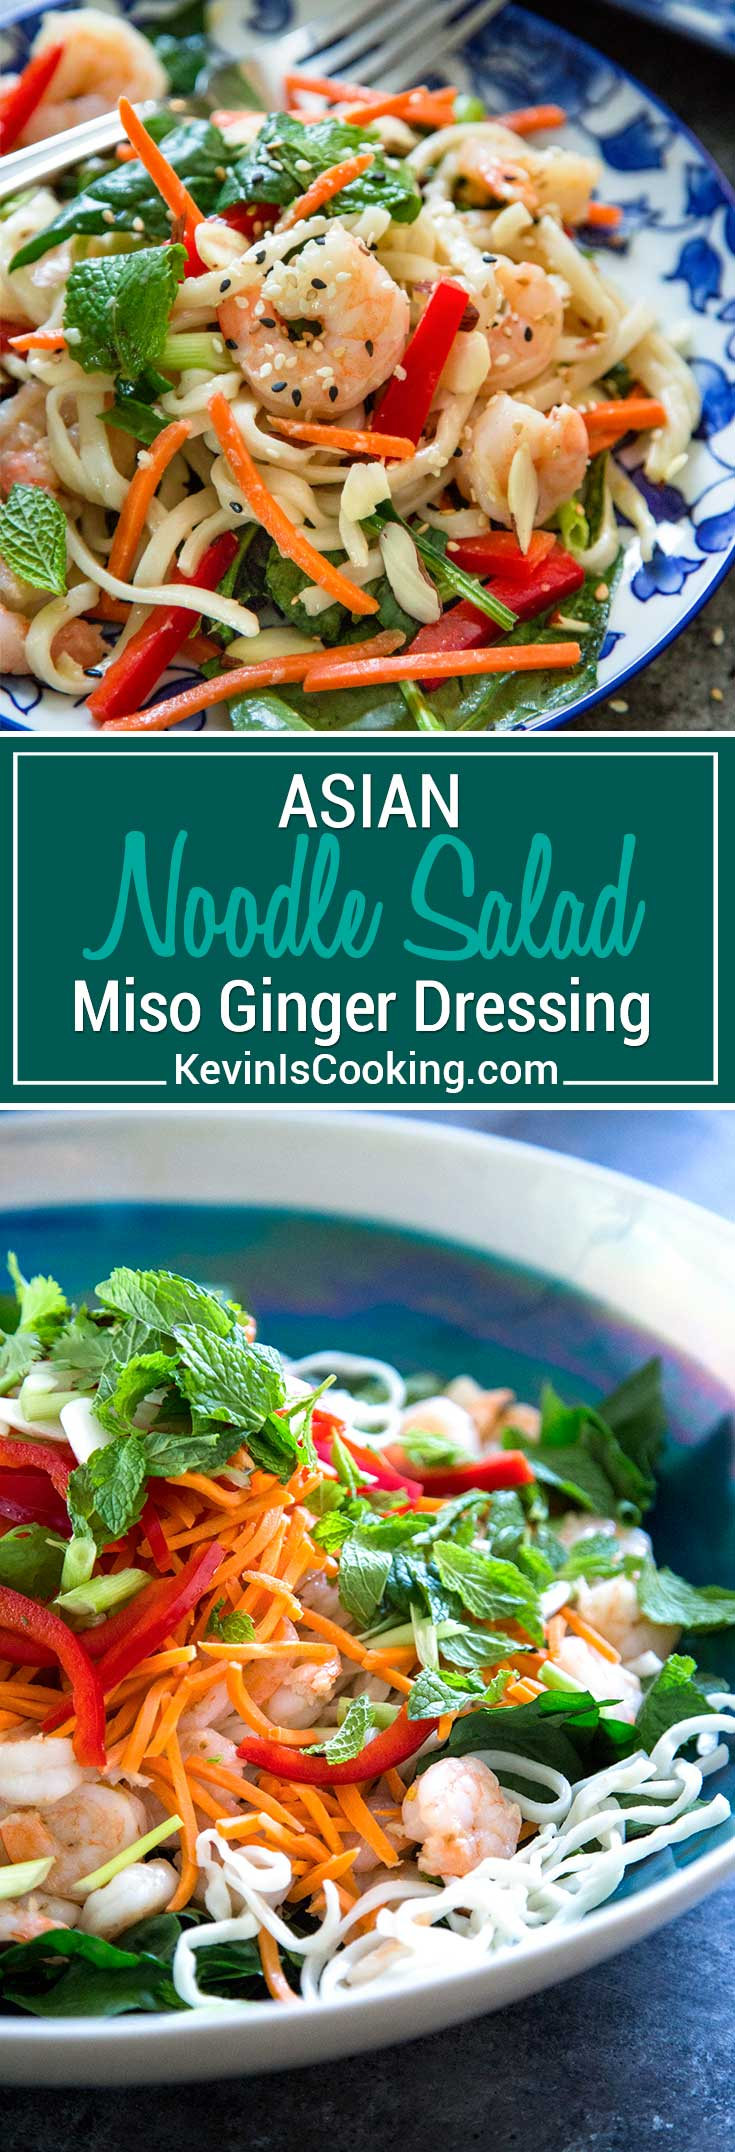 This Asian Noodle Salad has an amazing miso ginger dressing and the pan seared shrimp, crisp vegetables and herbs make this just cooked noodle salad a meal!